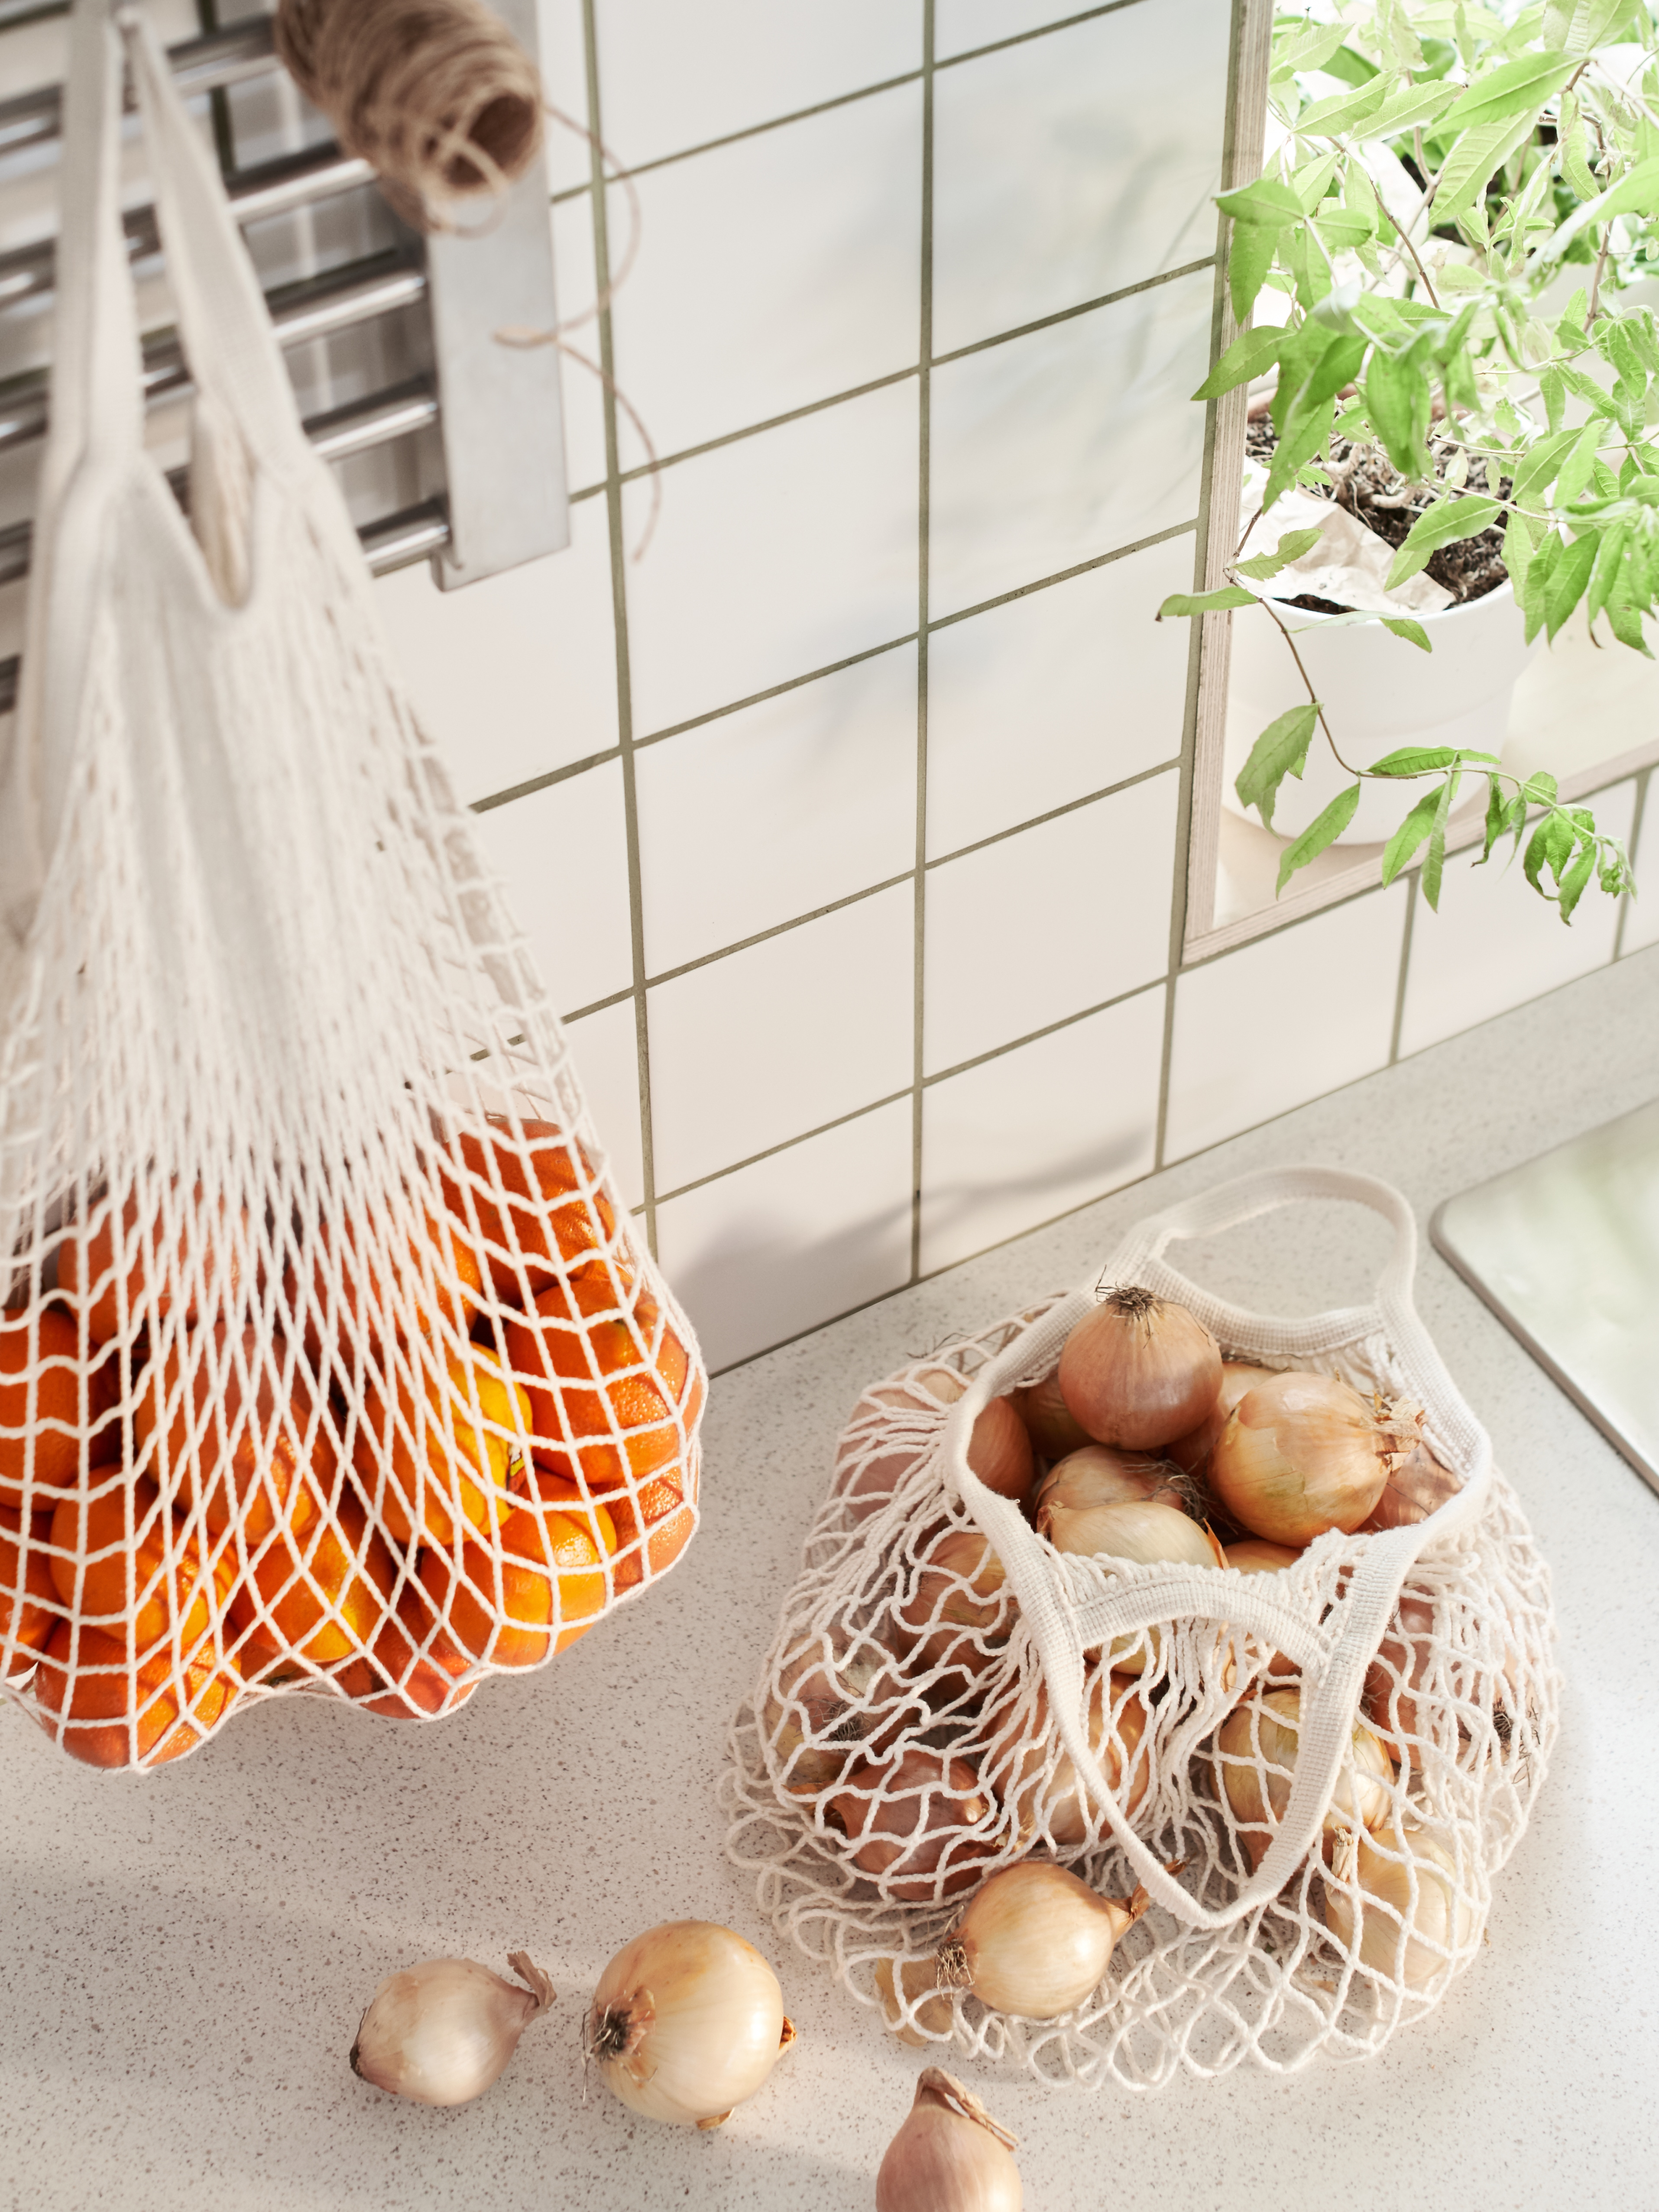 A kitchen top with a natural KUNGSFORS cotton net bag with onions. A wall grid holding a net bag with mandarins.